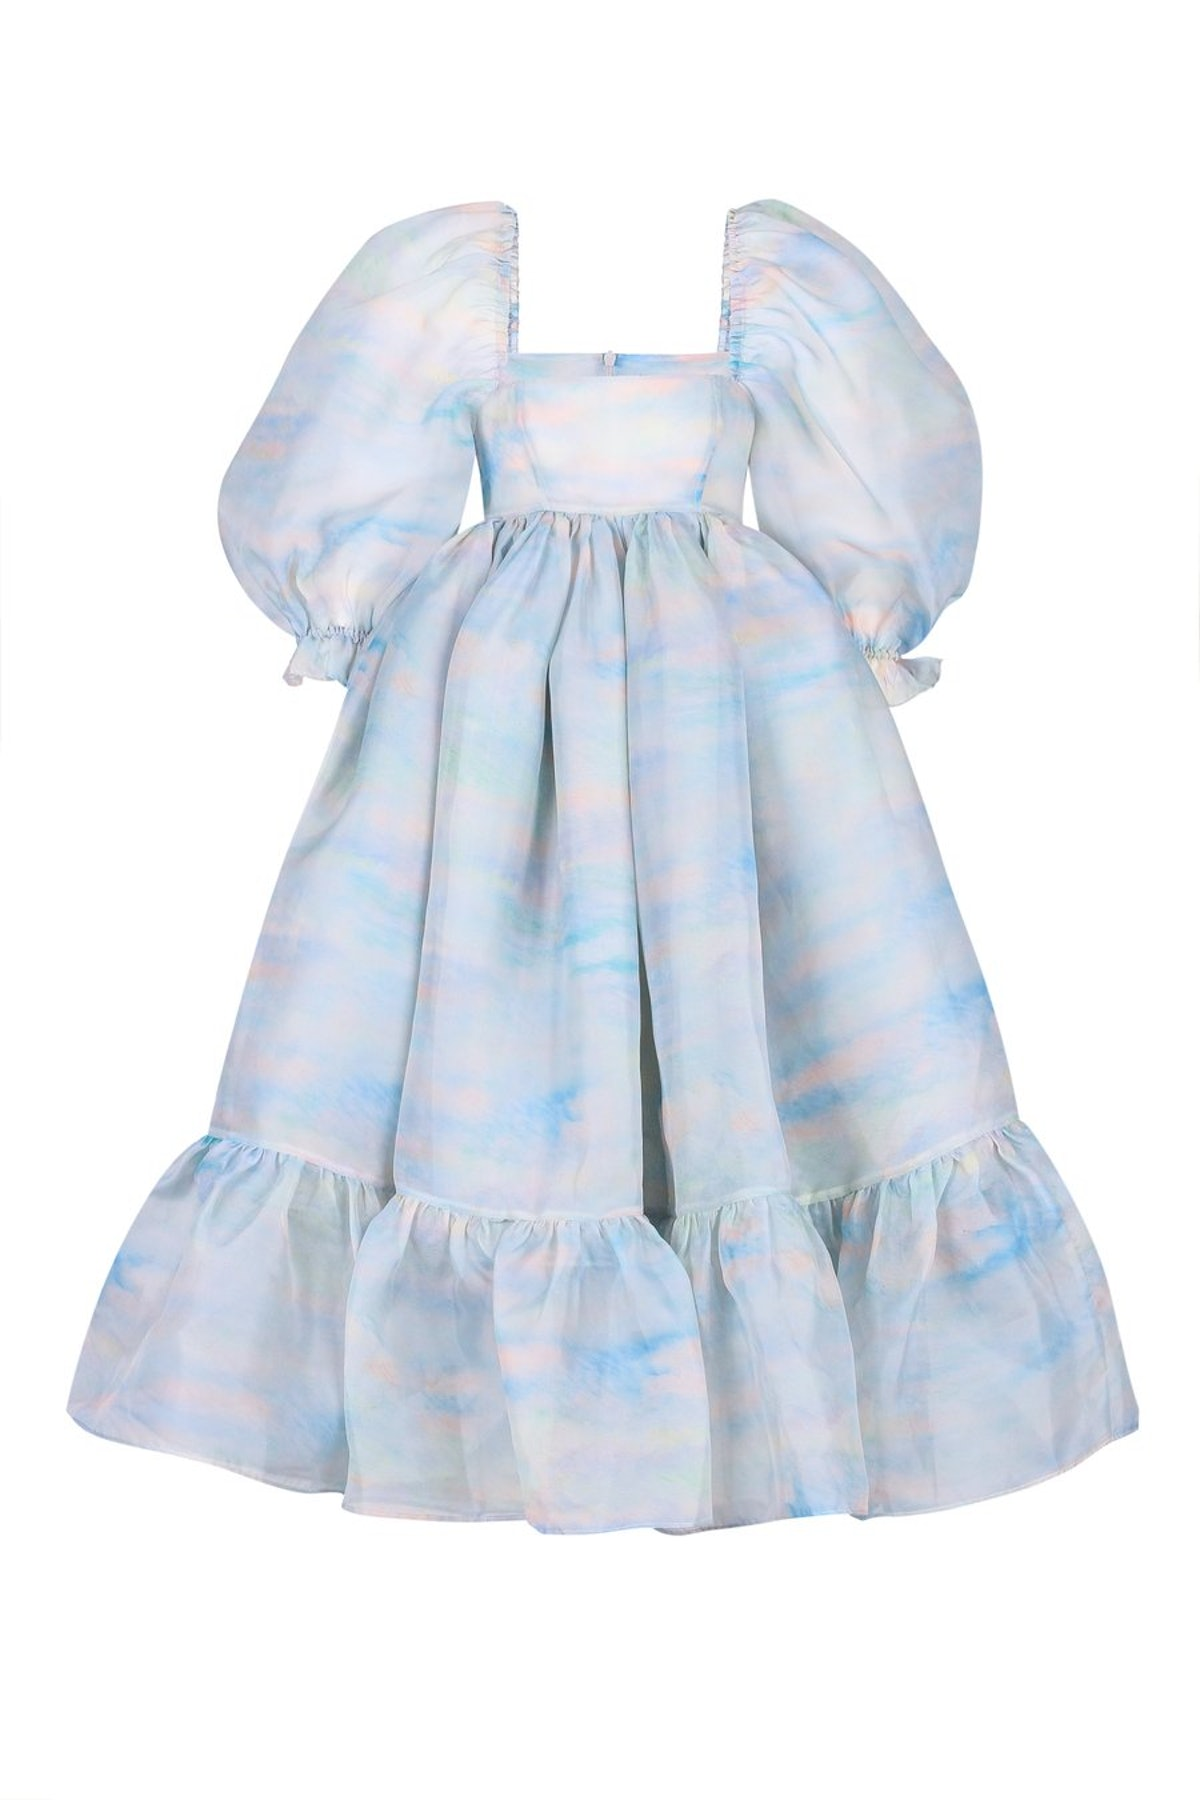 The Renoir Sky French Puff Dress